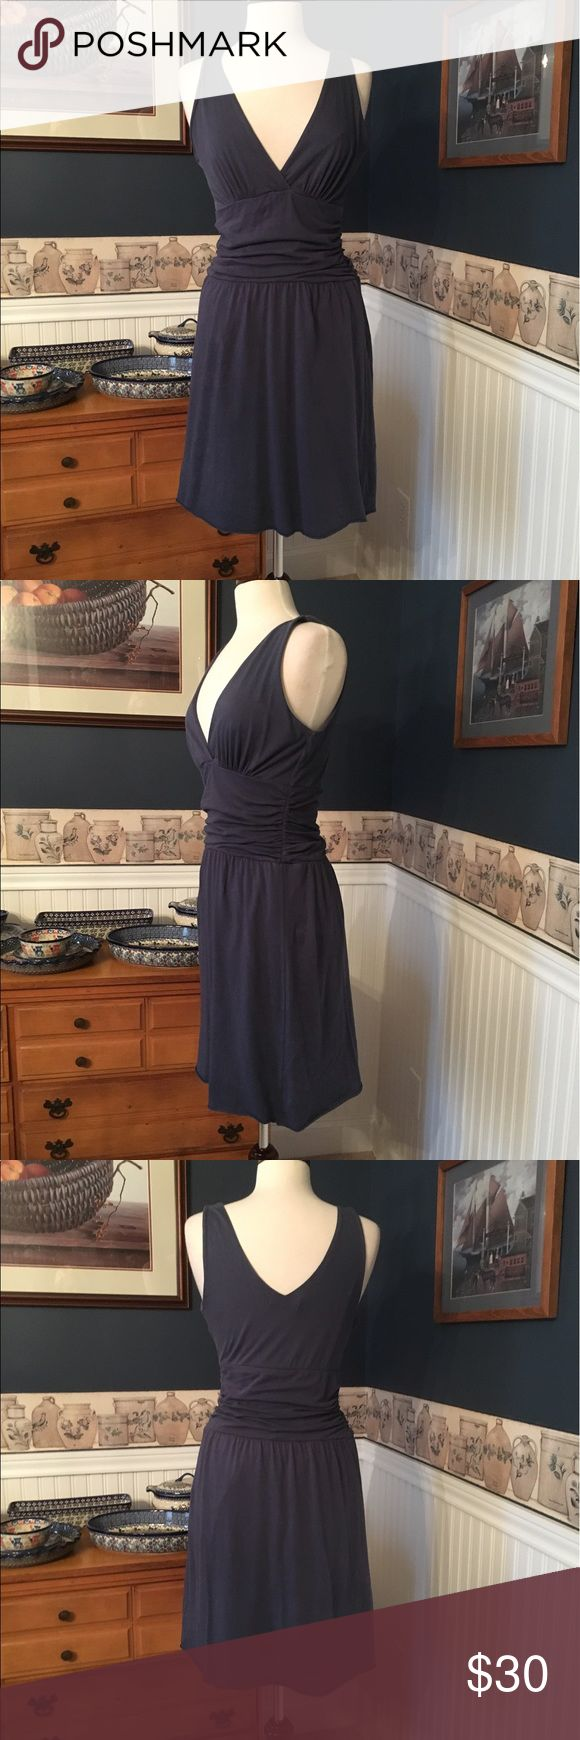 Velvet by Graham & Spencer Dress Size Medium Velvet by Graham & Spencer cotton dress in very good previously worn condition. Super soft and comfy! Size Medium . The dress looks more blue in person. Velvet by Graham & Spencer Dresses Midi